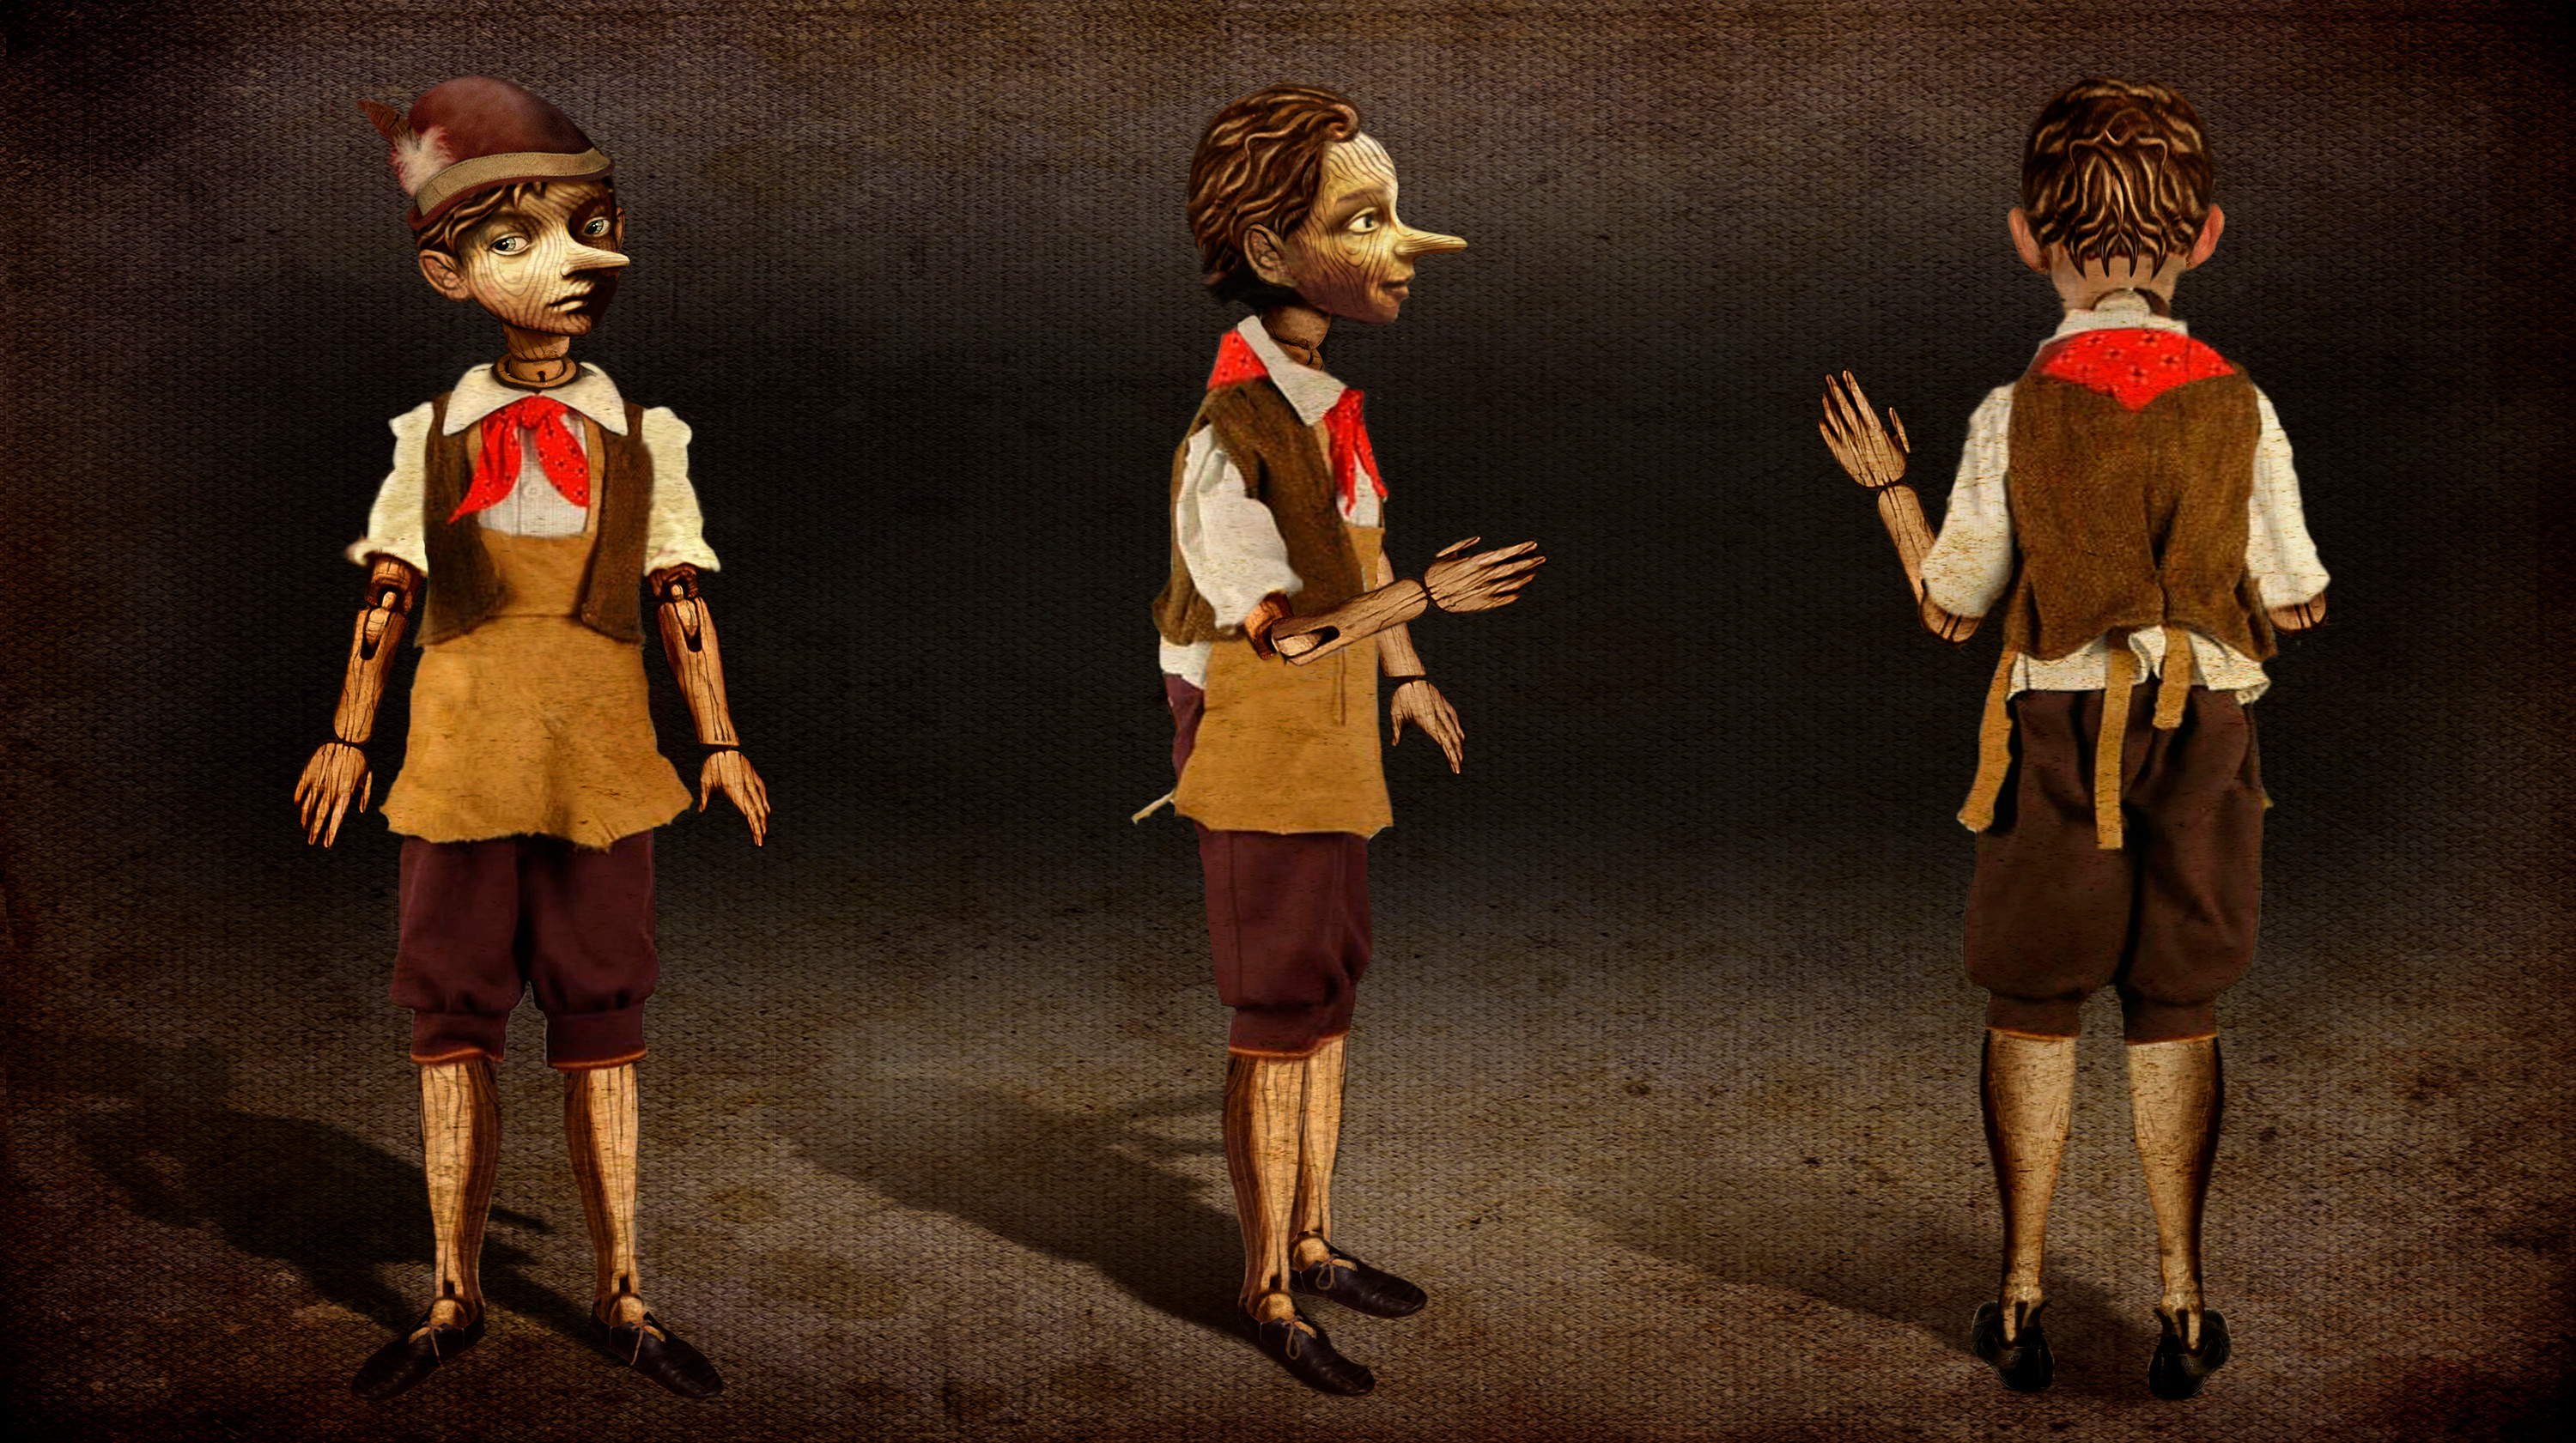 Pinocchio 3D Puppet and Practical Build - Clothed - Once Upon  a Time Season 1